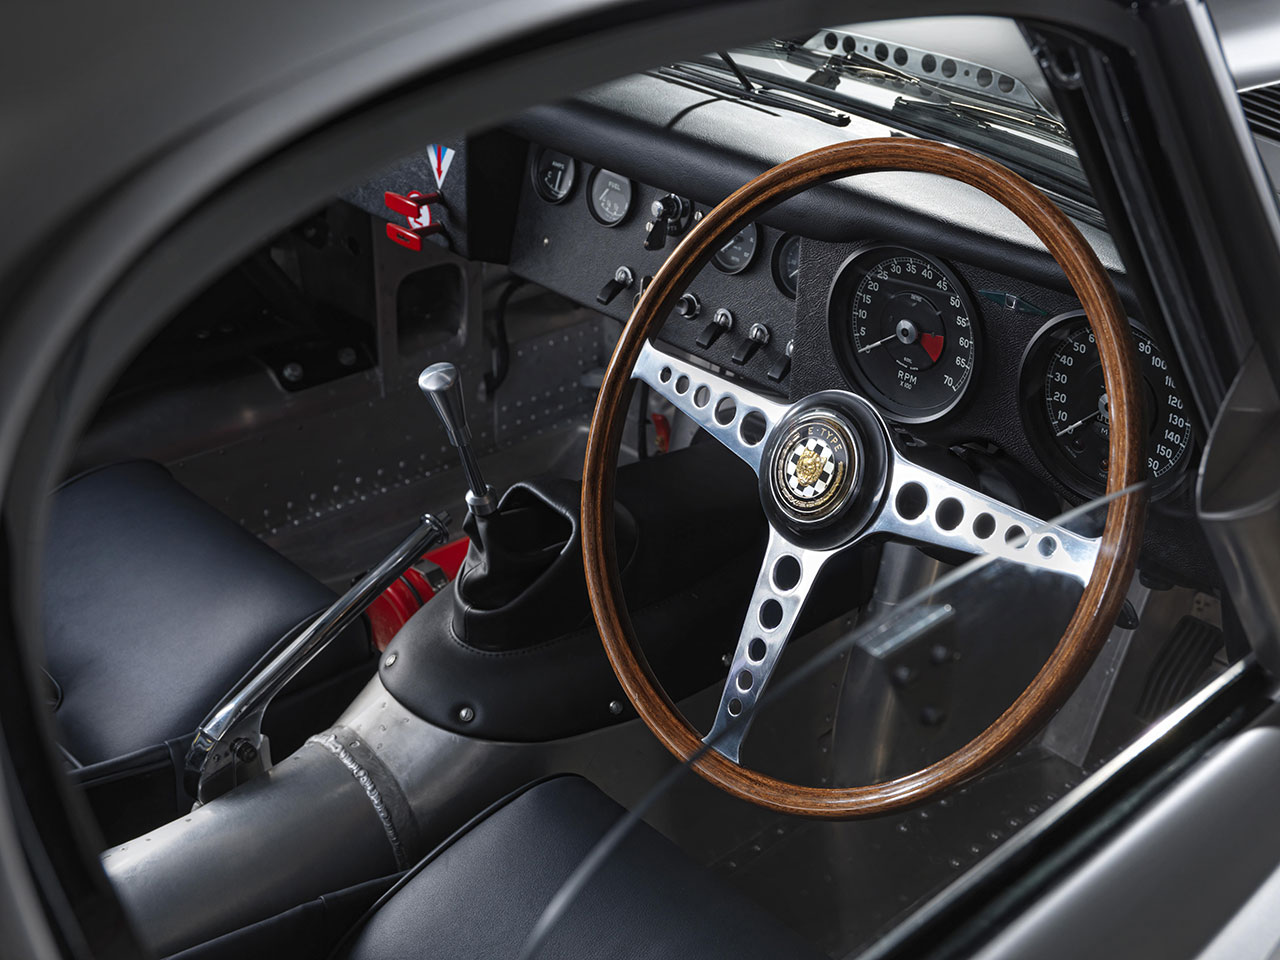 Jaguar Lightweight E-Type dash